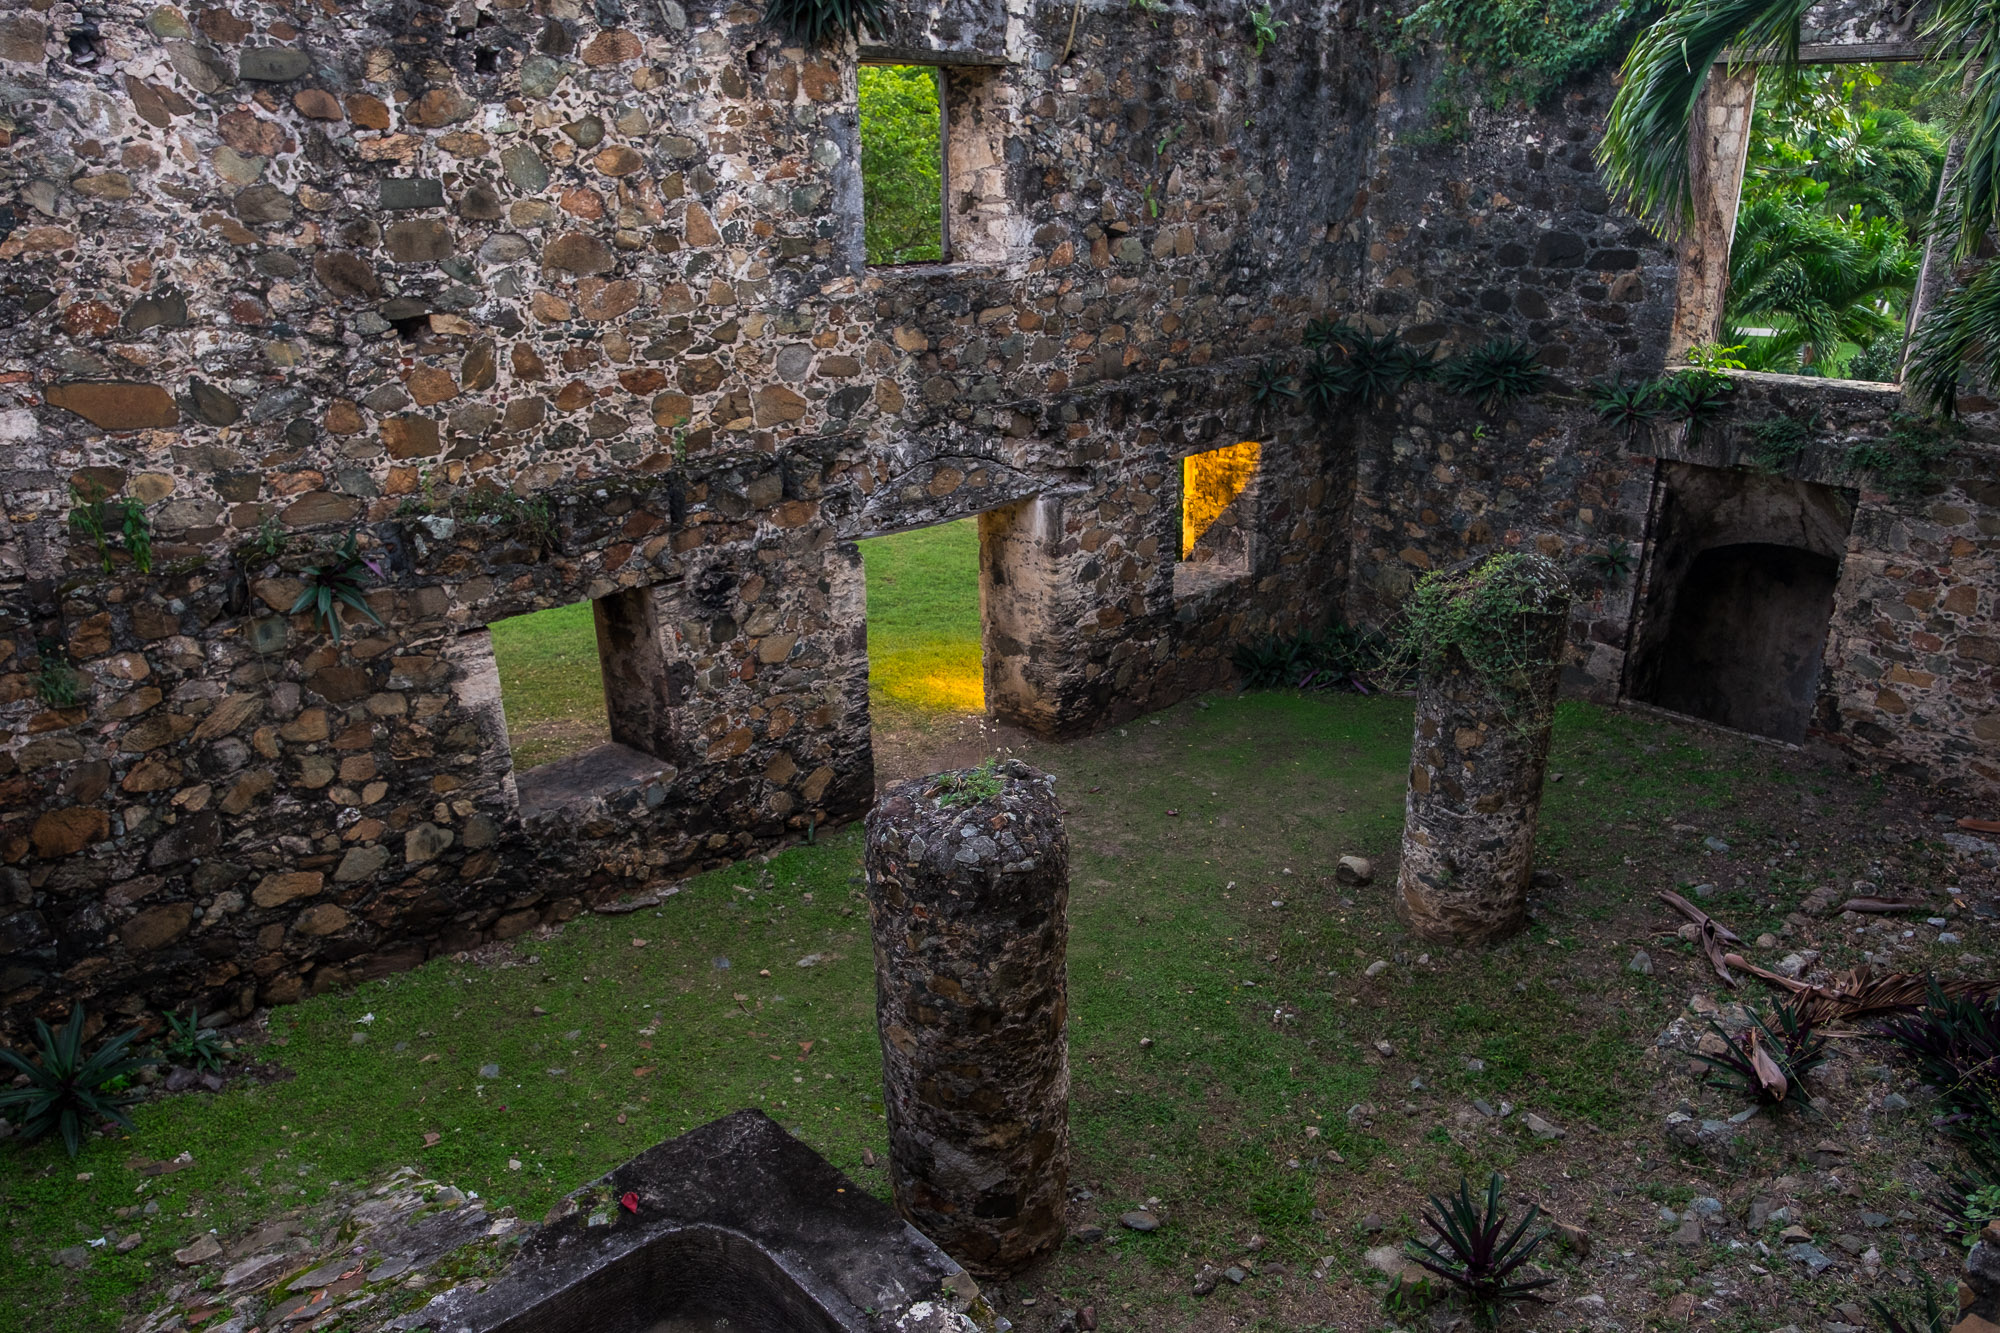 One of the rooms at sugarmill ruins.